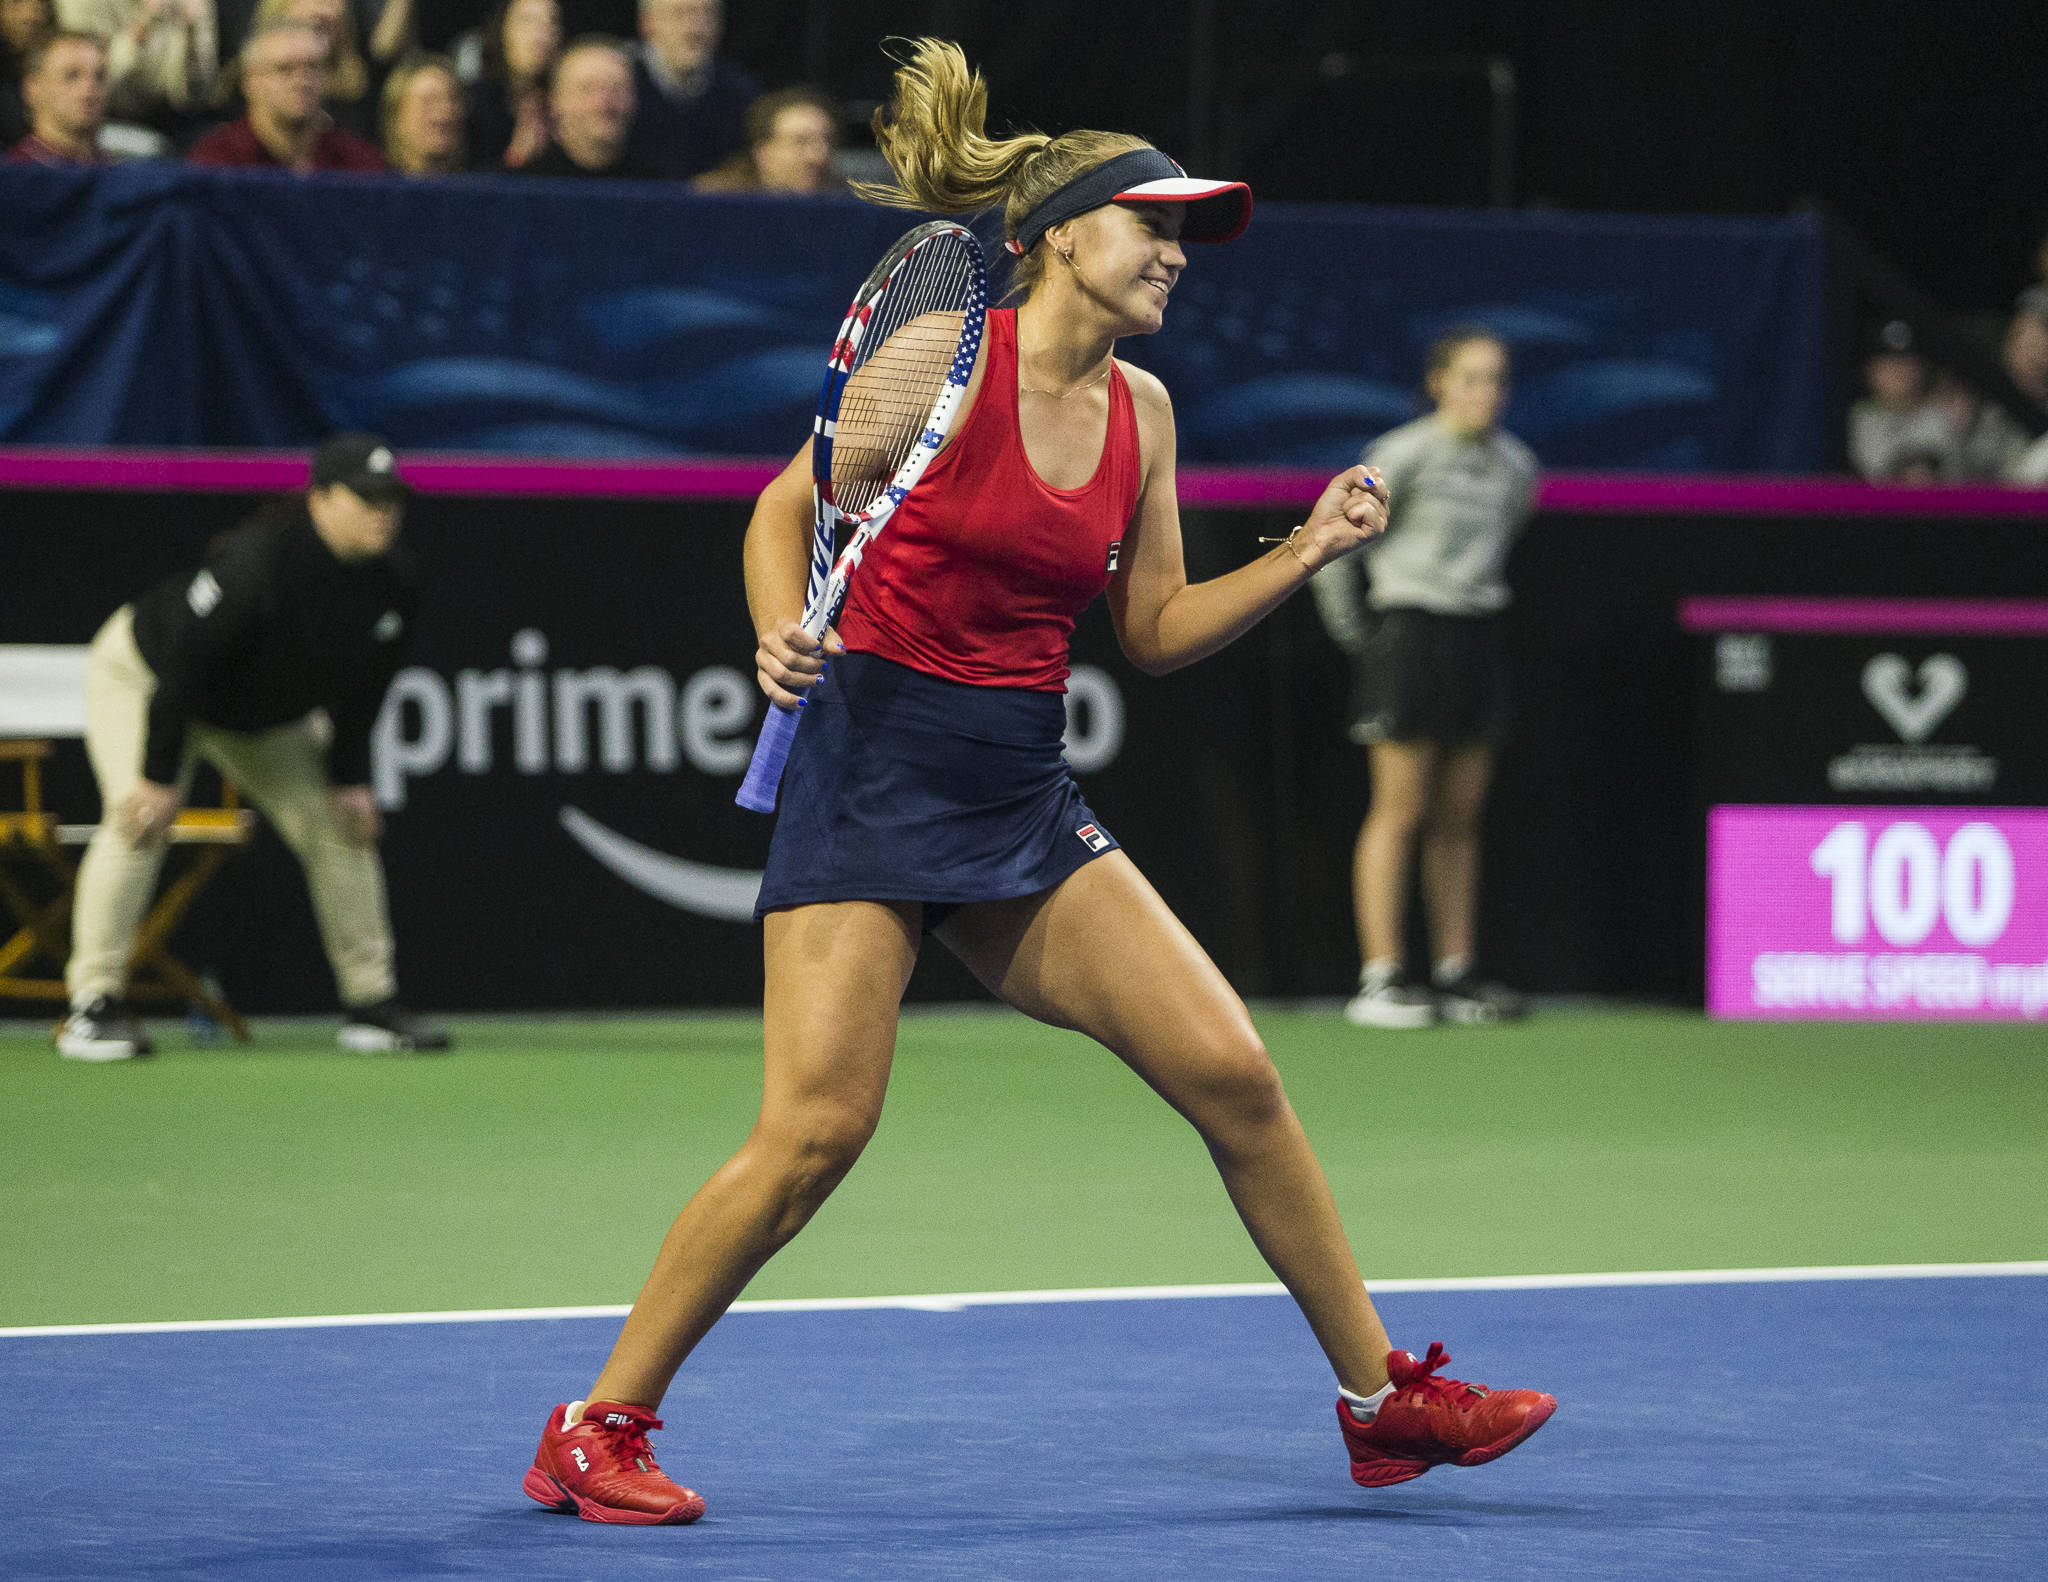 Sofia Kenin pumps her fist in the air after winning a set against Latvia's Anastasija Sevastova during the Fed Cup at Angel of the Winds Arena on Friday in Everett. (Olivia Vanni / The Herald)